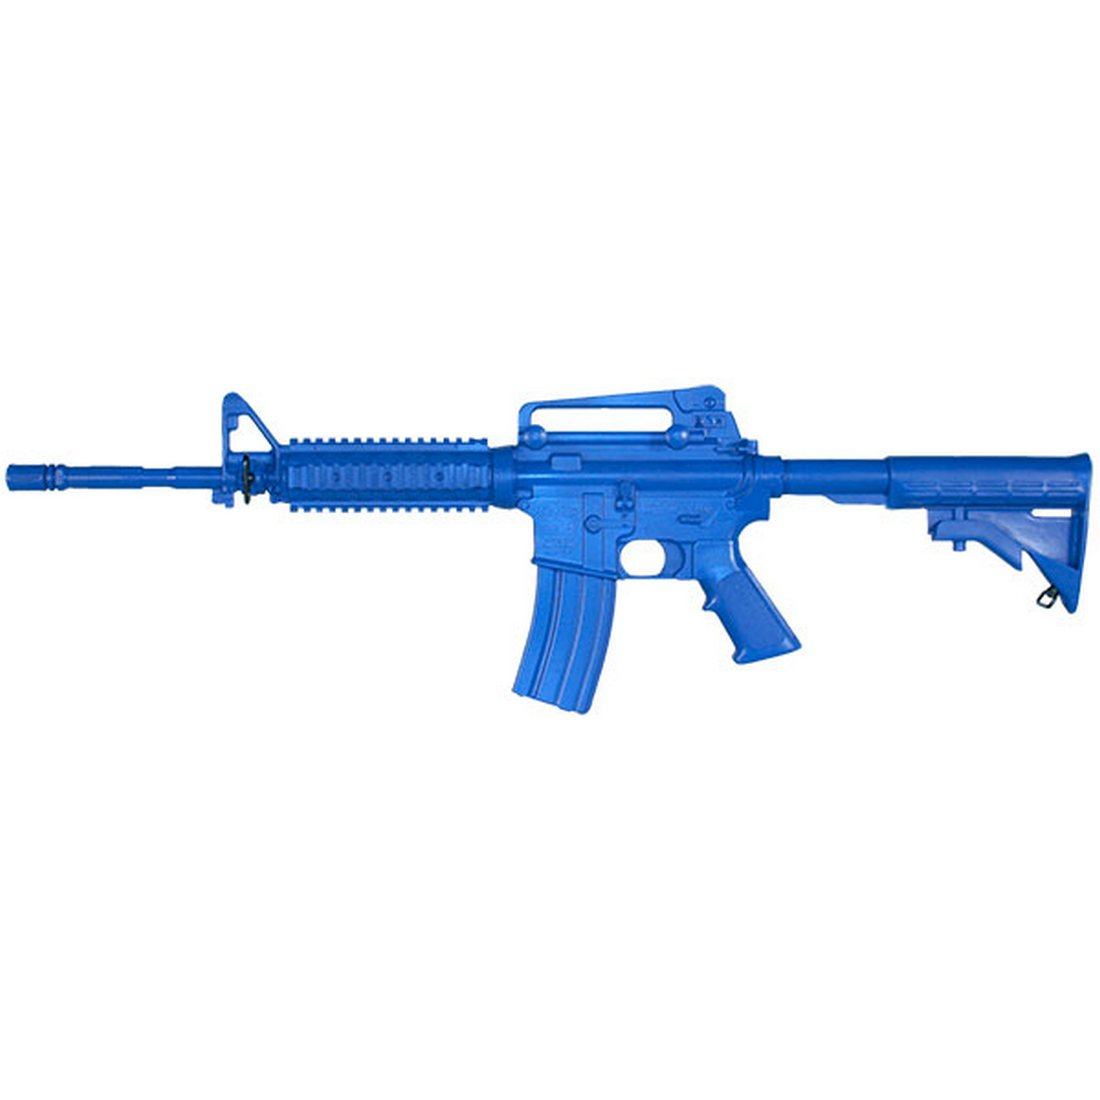 "Blueguns FSM4R14 M4 Open Stock, Fwd Rail, 14"" Barrel"